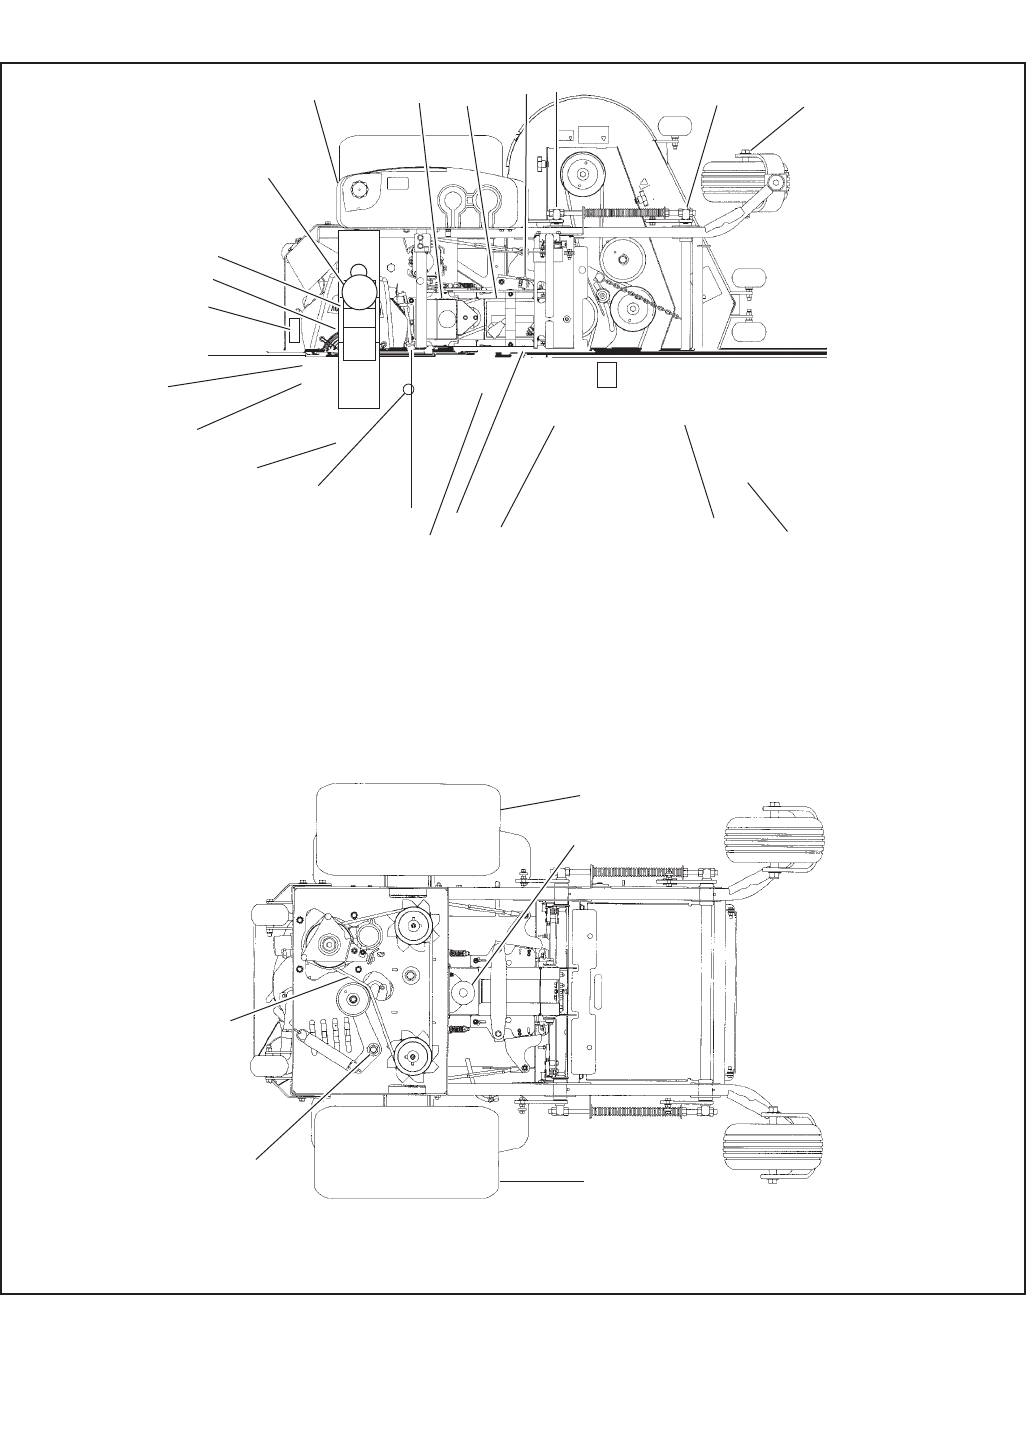 515289f2 b600 4d34 9096 c70021832d17 bg15 page 21 of hustler turf lawn mower hustler z user guide hustler fastrak wiring diagram at soozxer.org